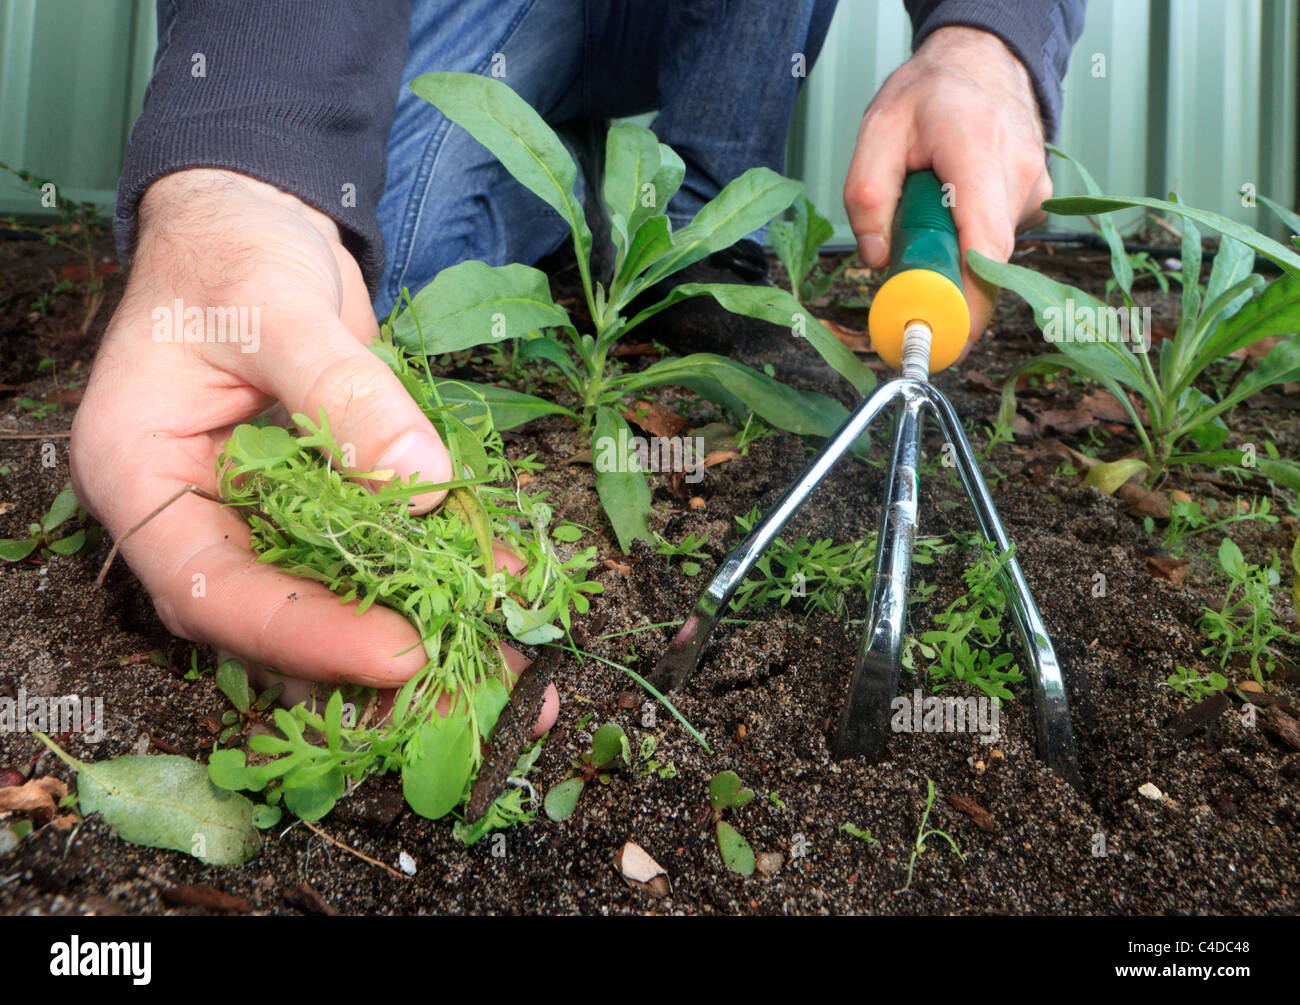 Pulling up weeds with a weeding fork - Stock Image